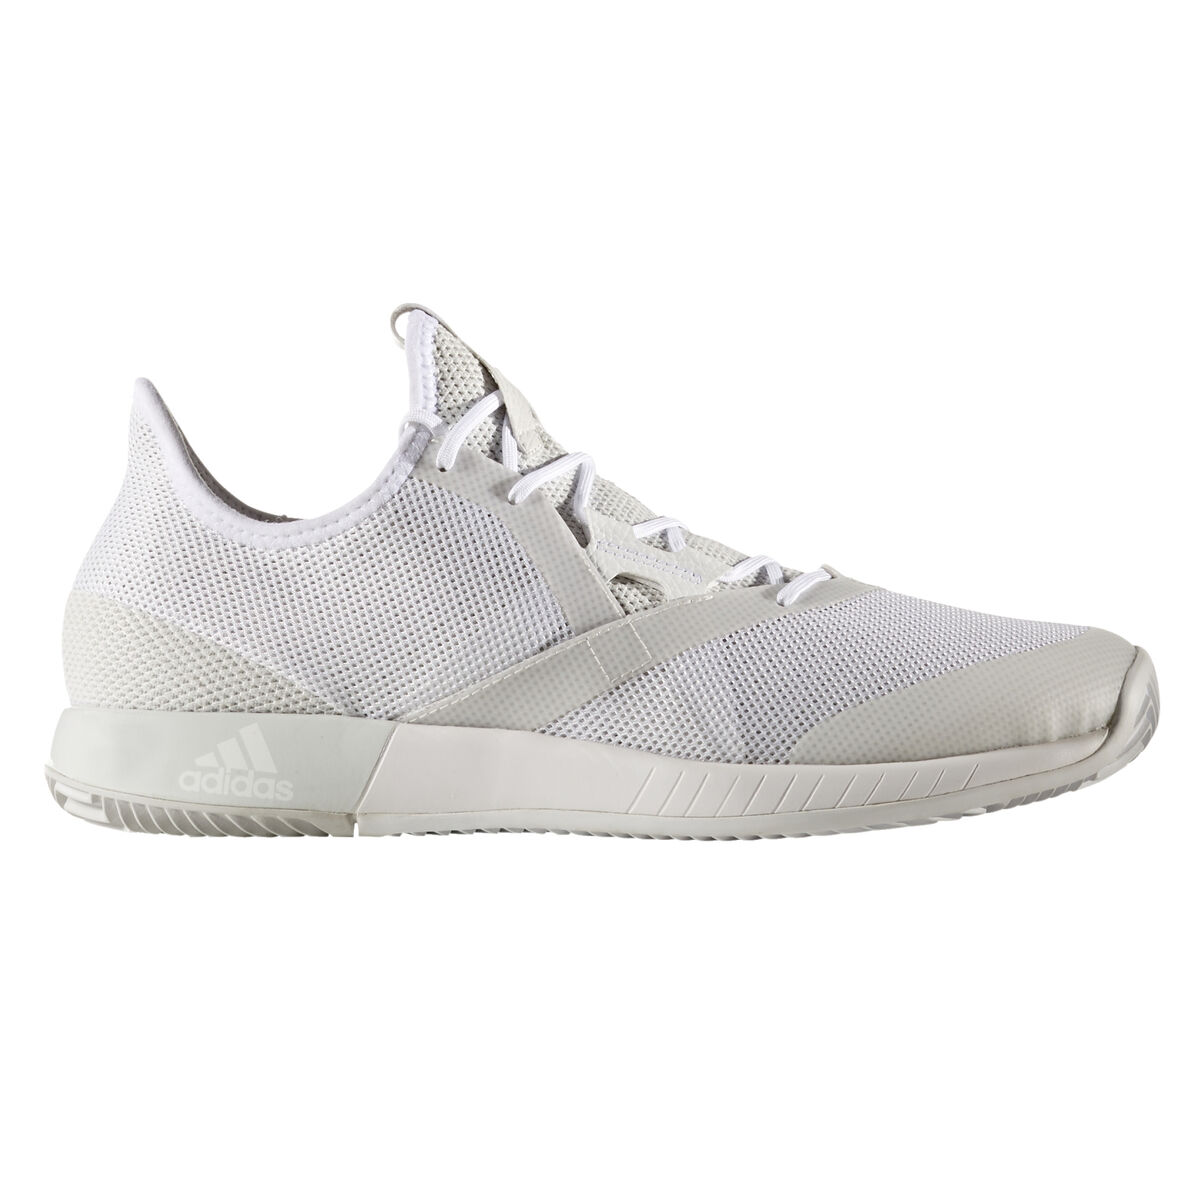 9465b46f9a5a0 Images. adidas Adizero Defiant Bounce Men  39 s Tennis Shoe ...